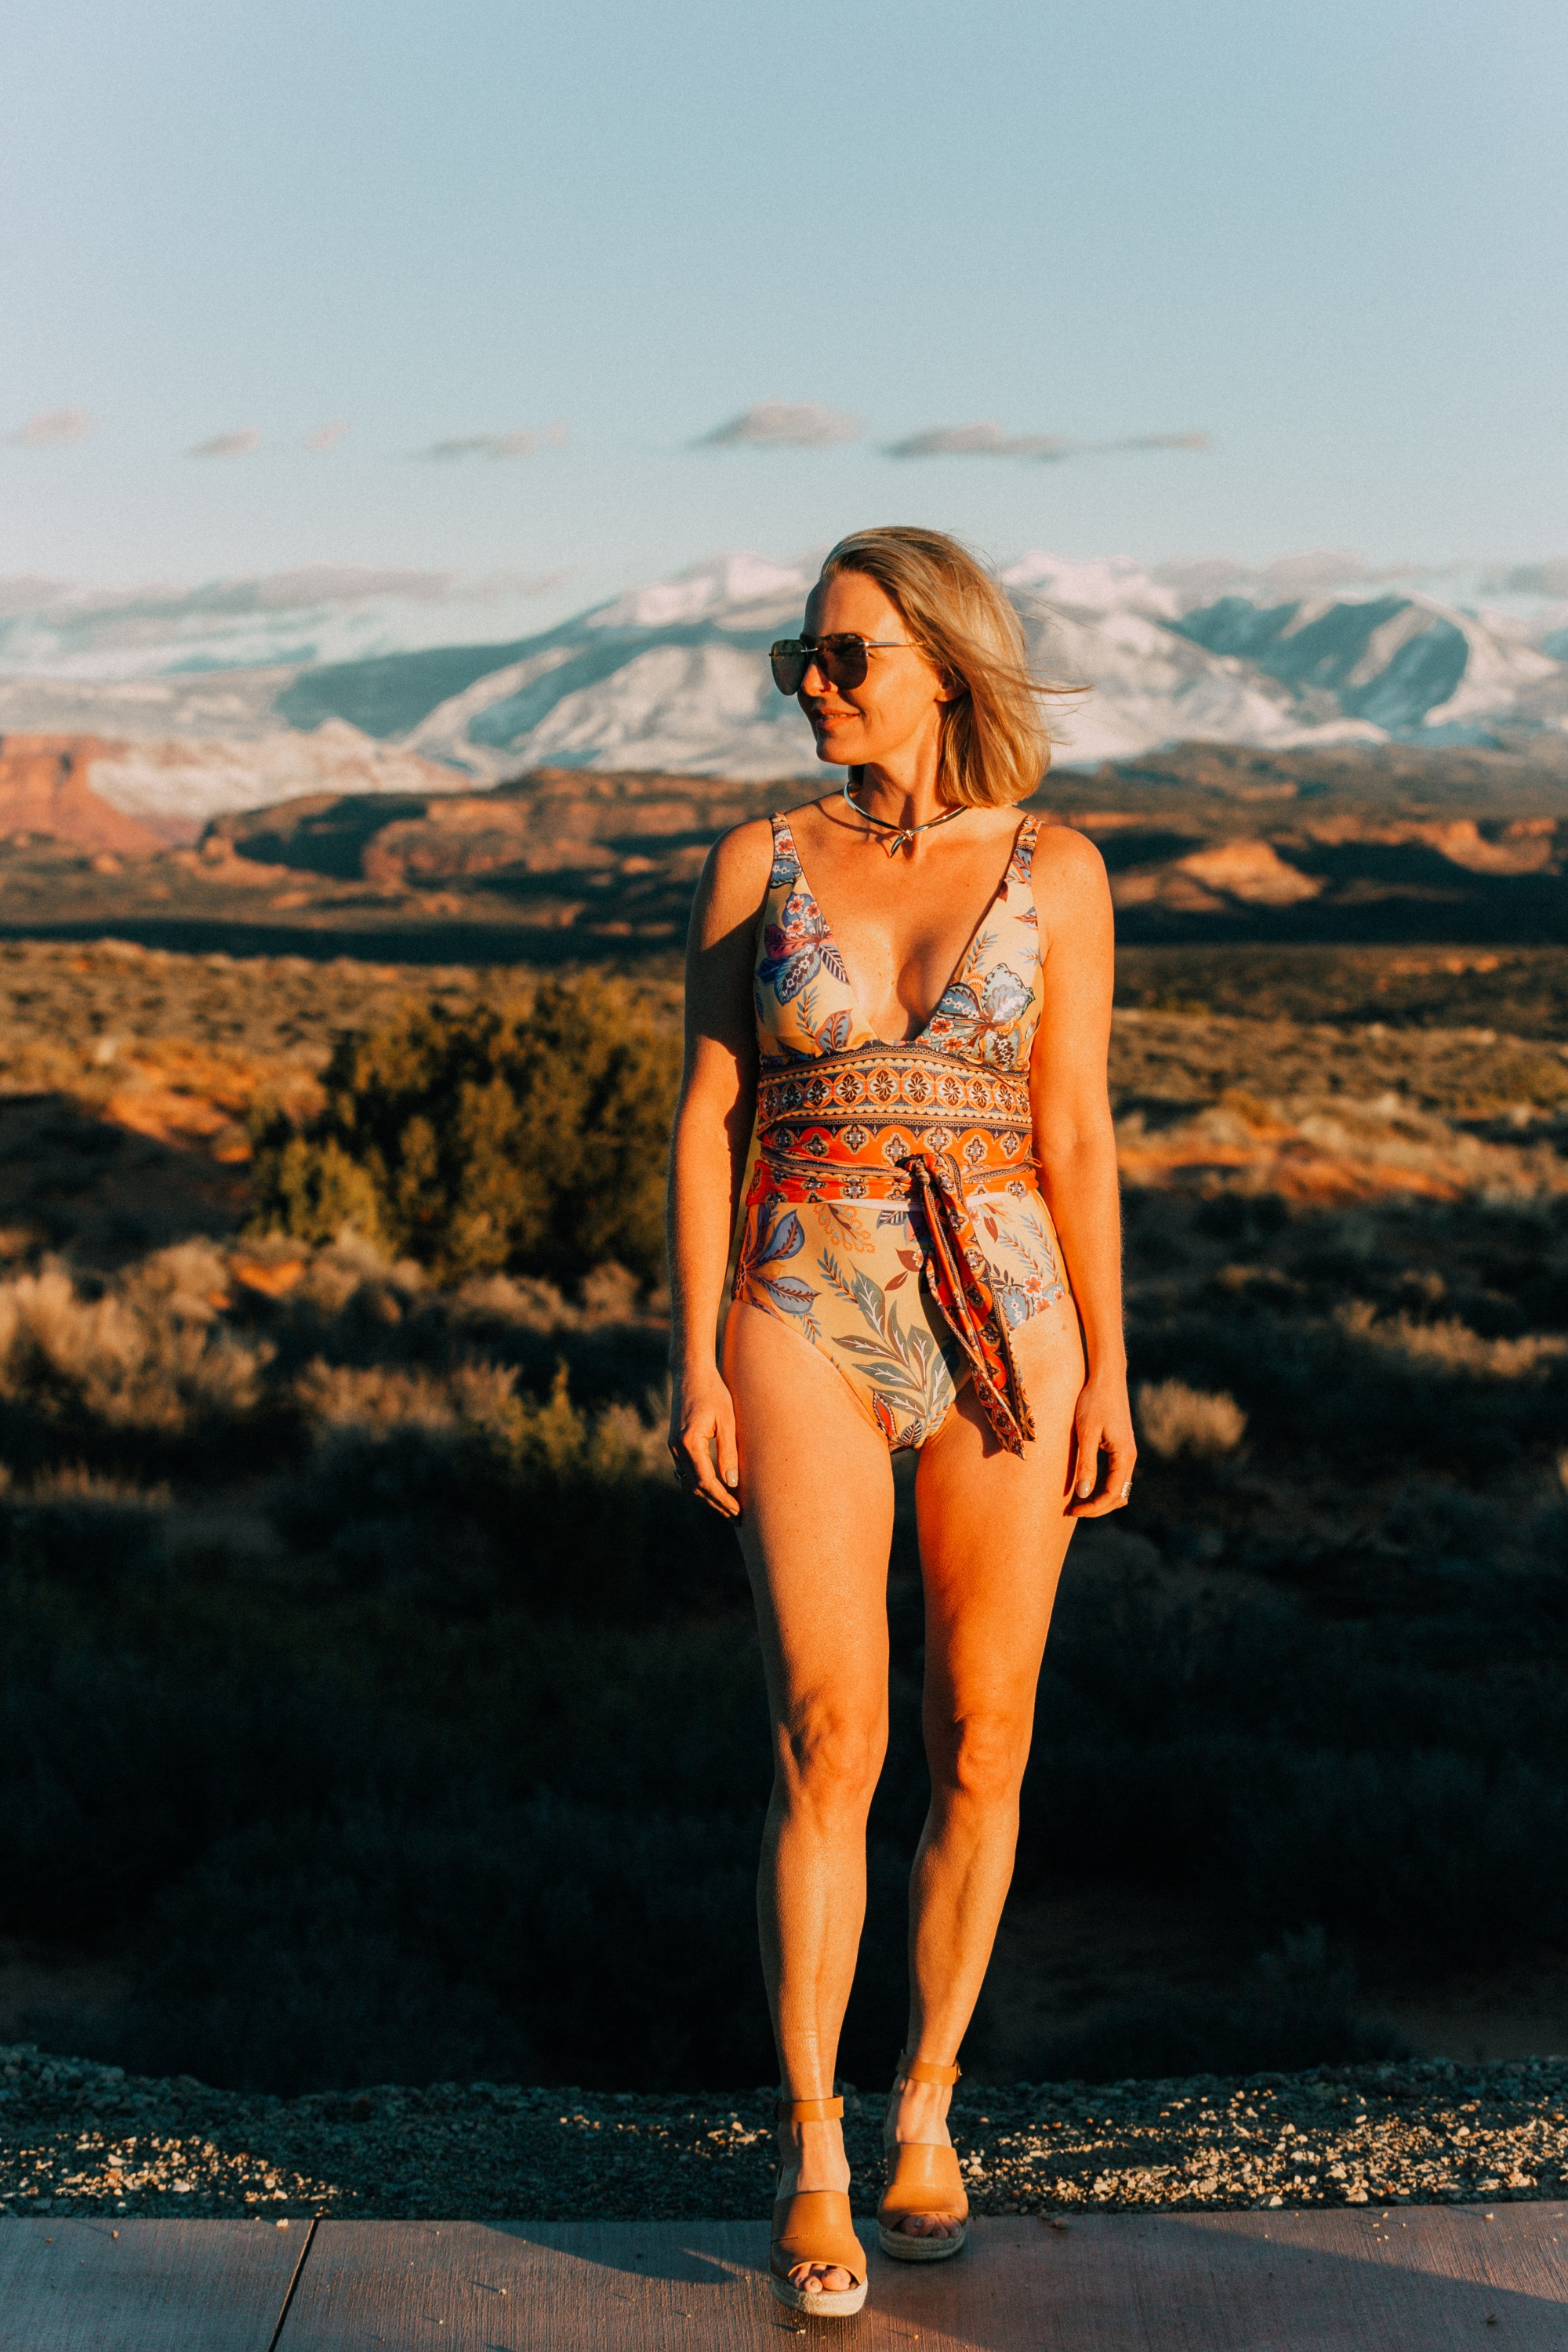 Full Coverage one piece paisley swimsuit by becca for women over 40 years old with Eddie Bargo choker necklace, and Treasure & Bond espadrille sandals in Moab, Utah